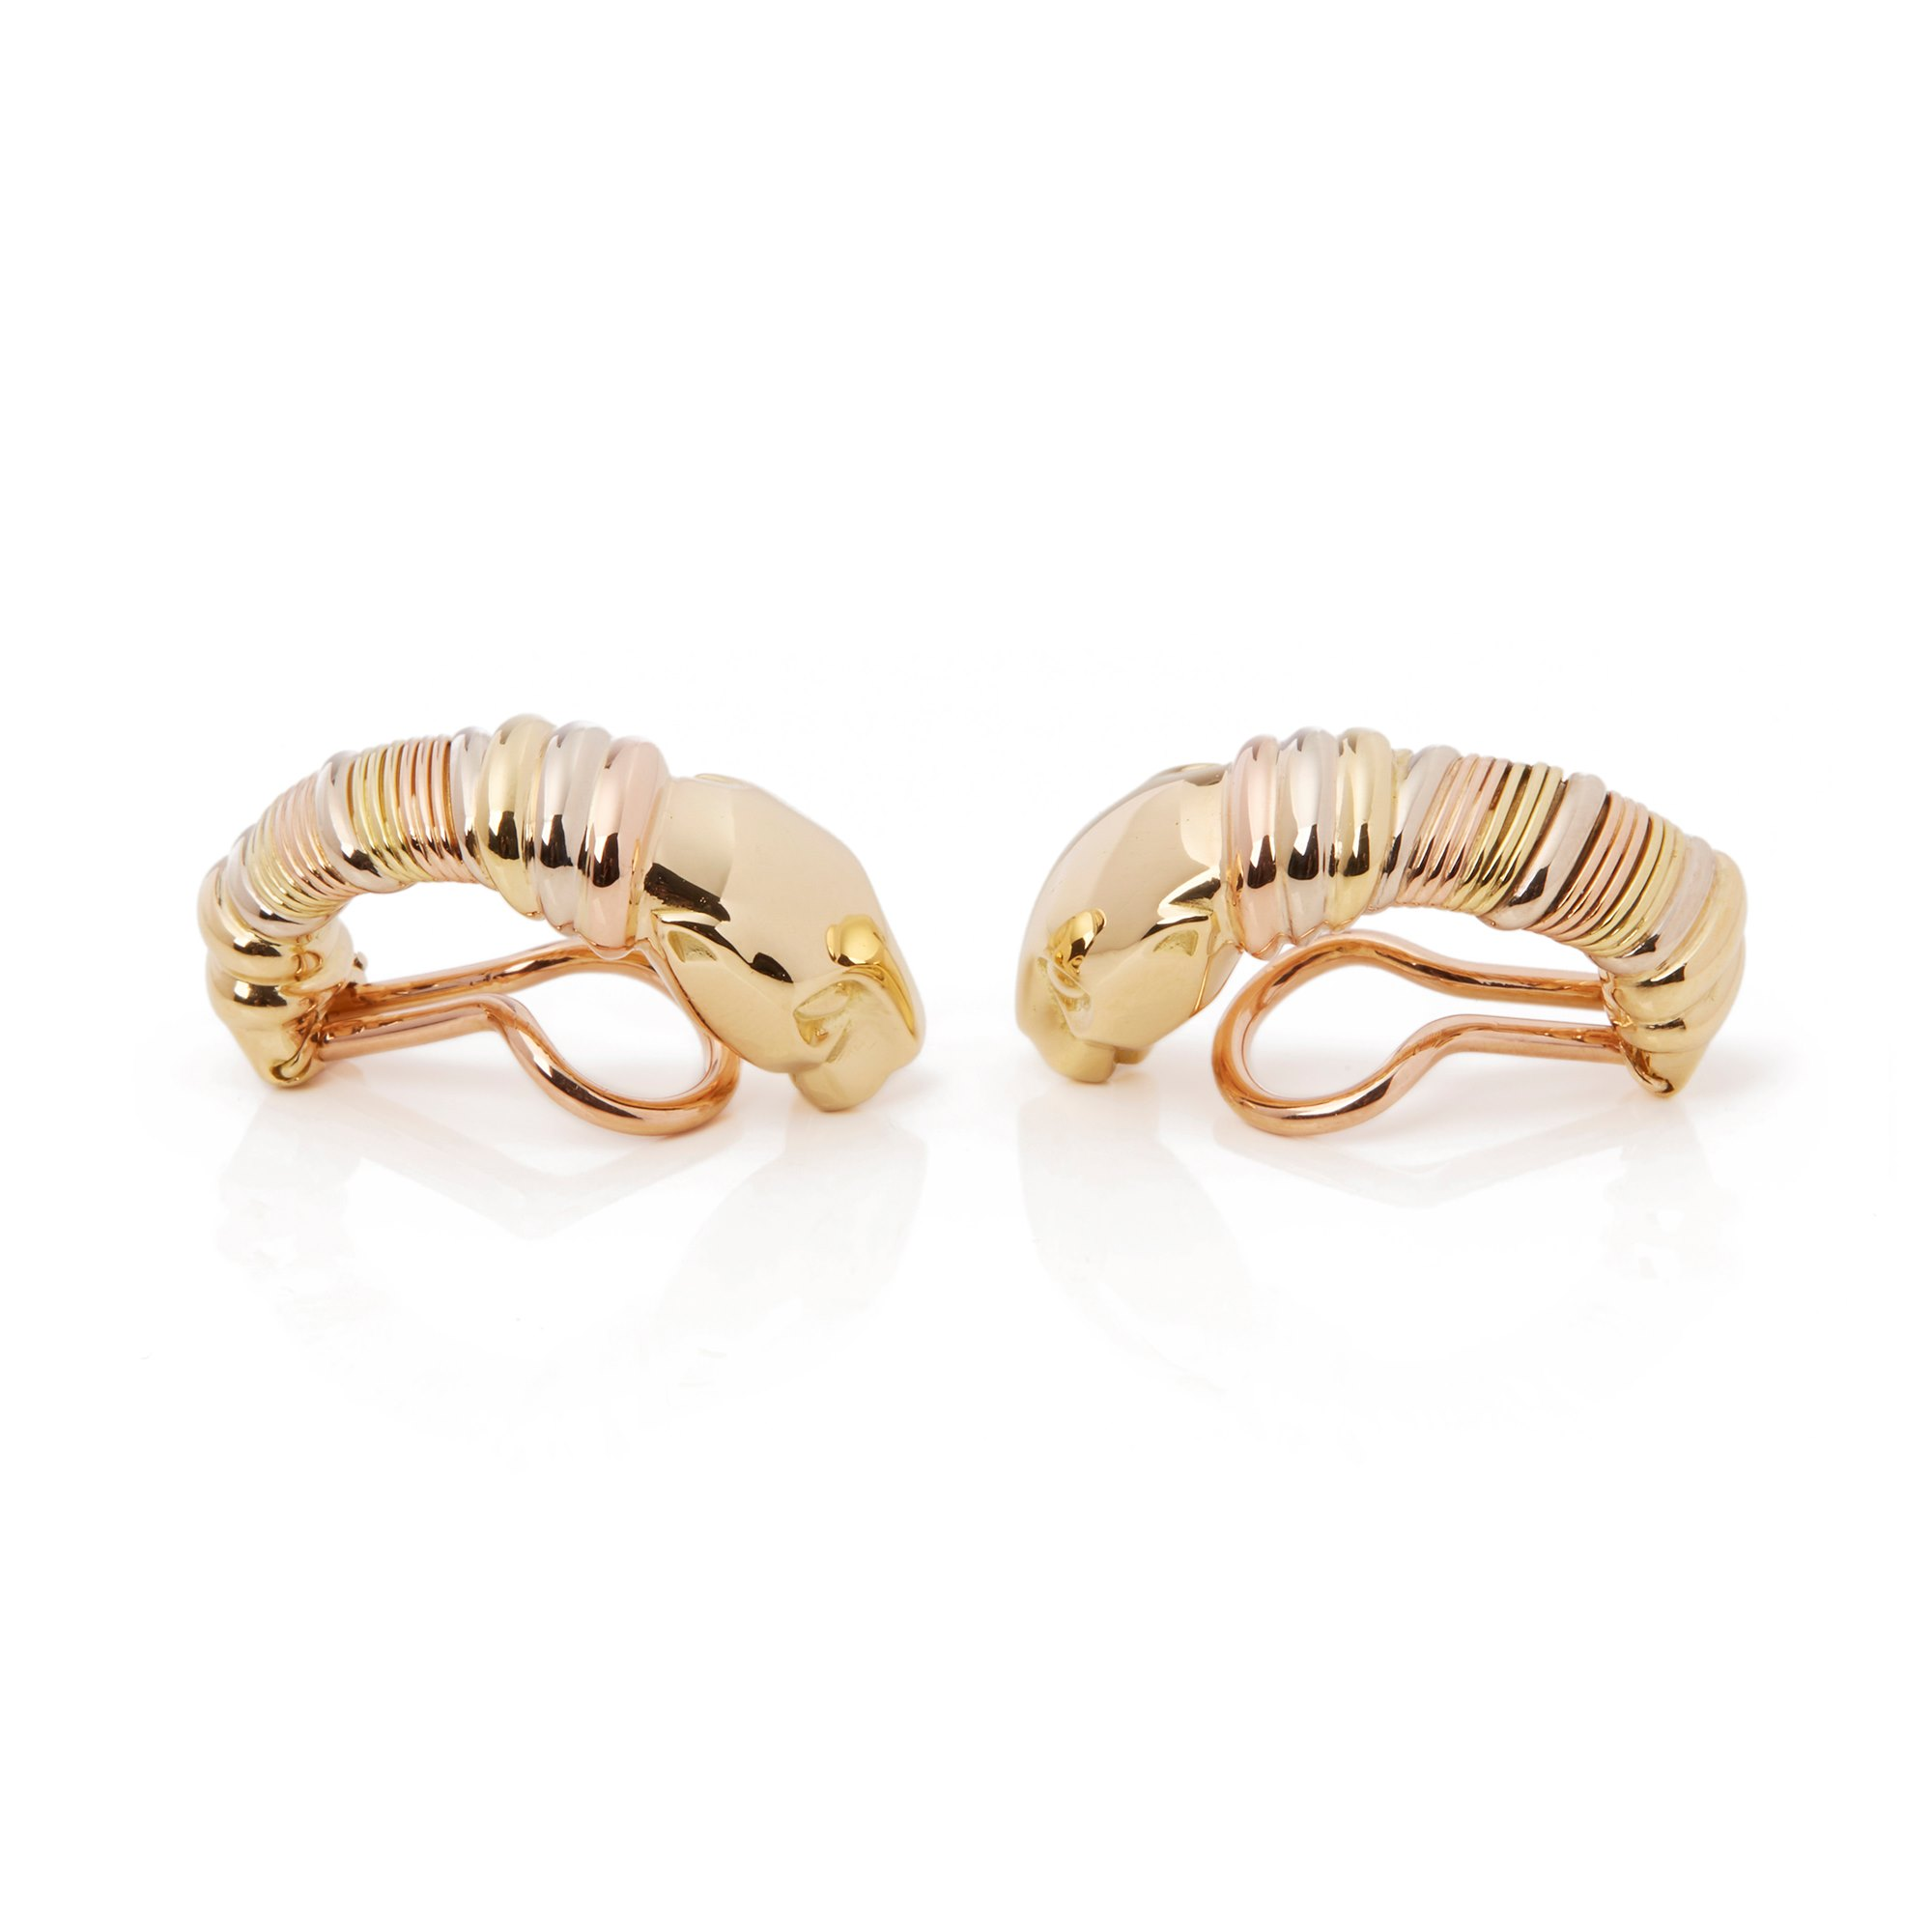 Cartier 18k Yellow, White & Rose Gold Panthère Earrings